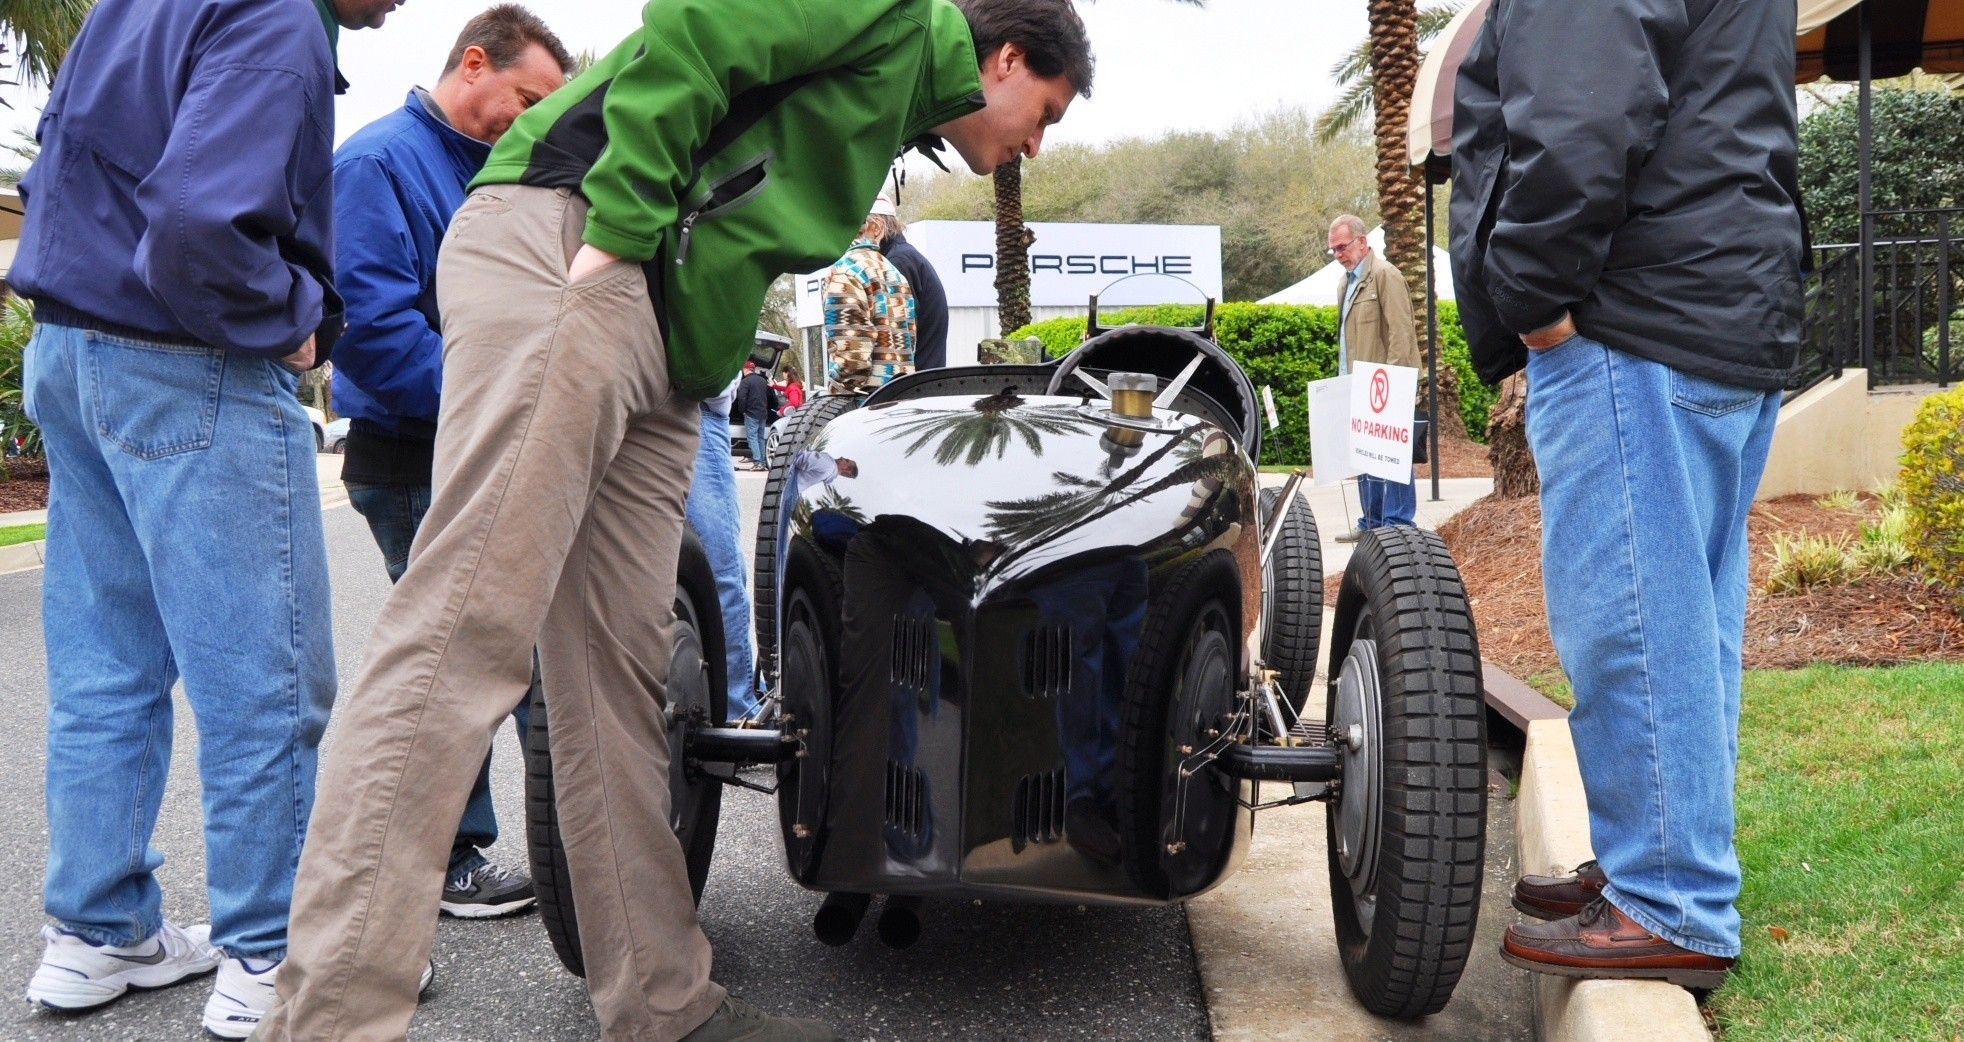 PurSang Argentina Shows Innovative Marketing with Street-Parked 1920s Bugatti GP Car18